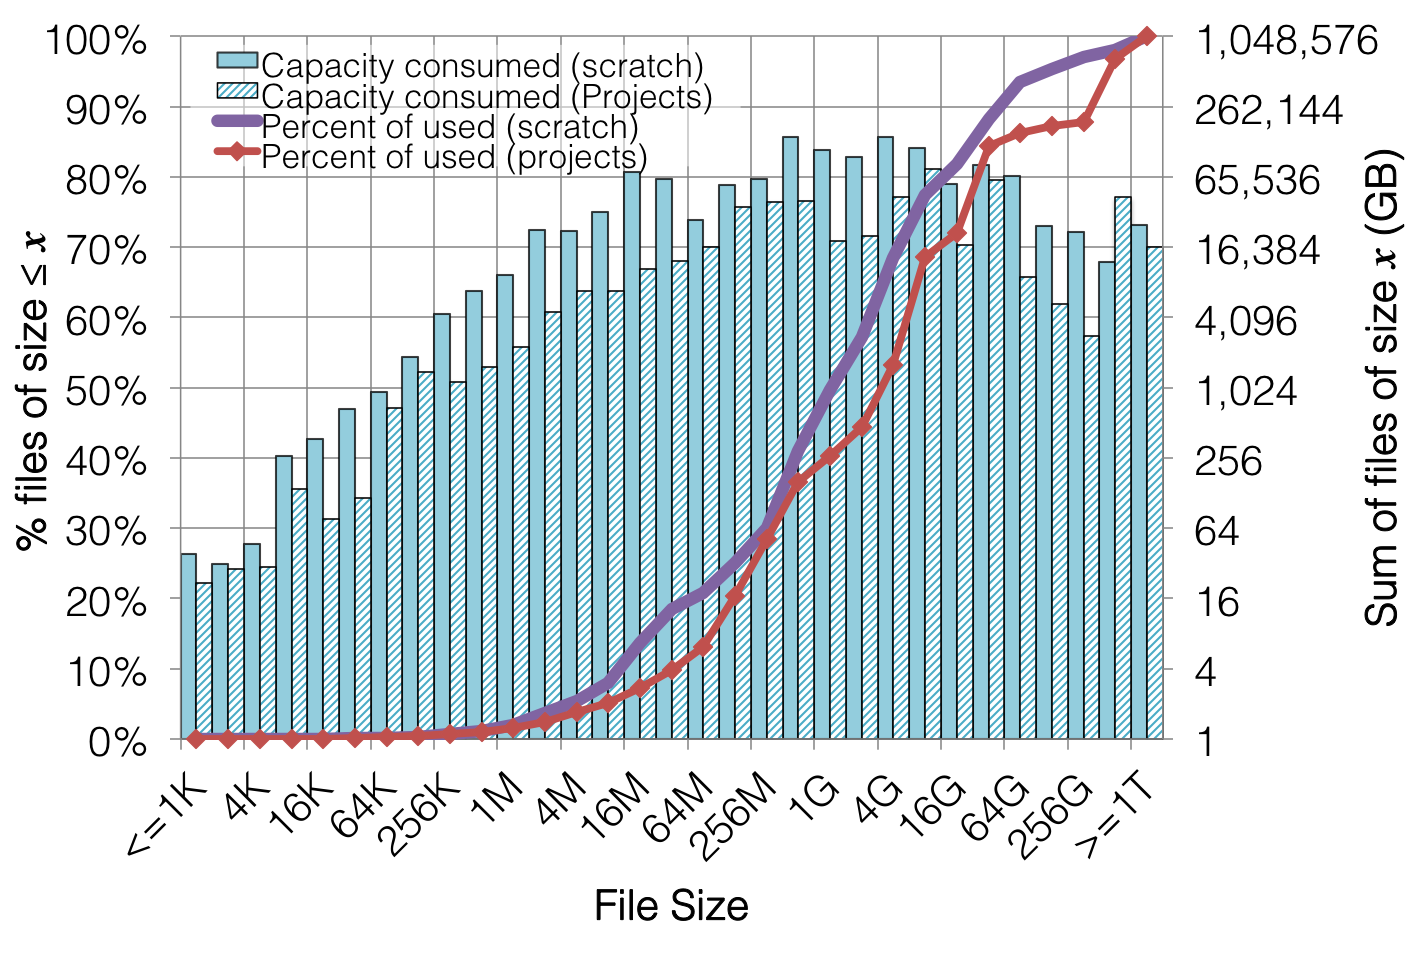 Glenn k lockwood november 2014 figure 10 file system capacity consumed by files of a given size on data oasiss projects file system nvjuhfo Image collections